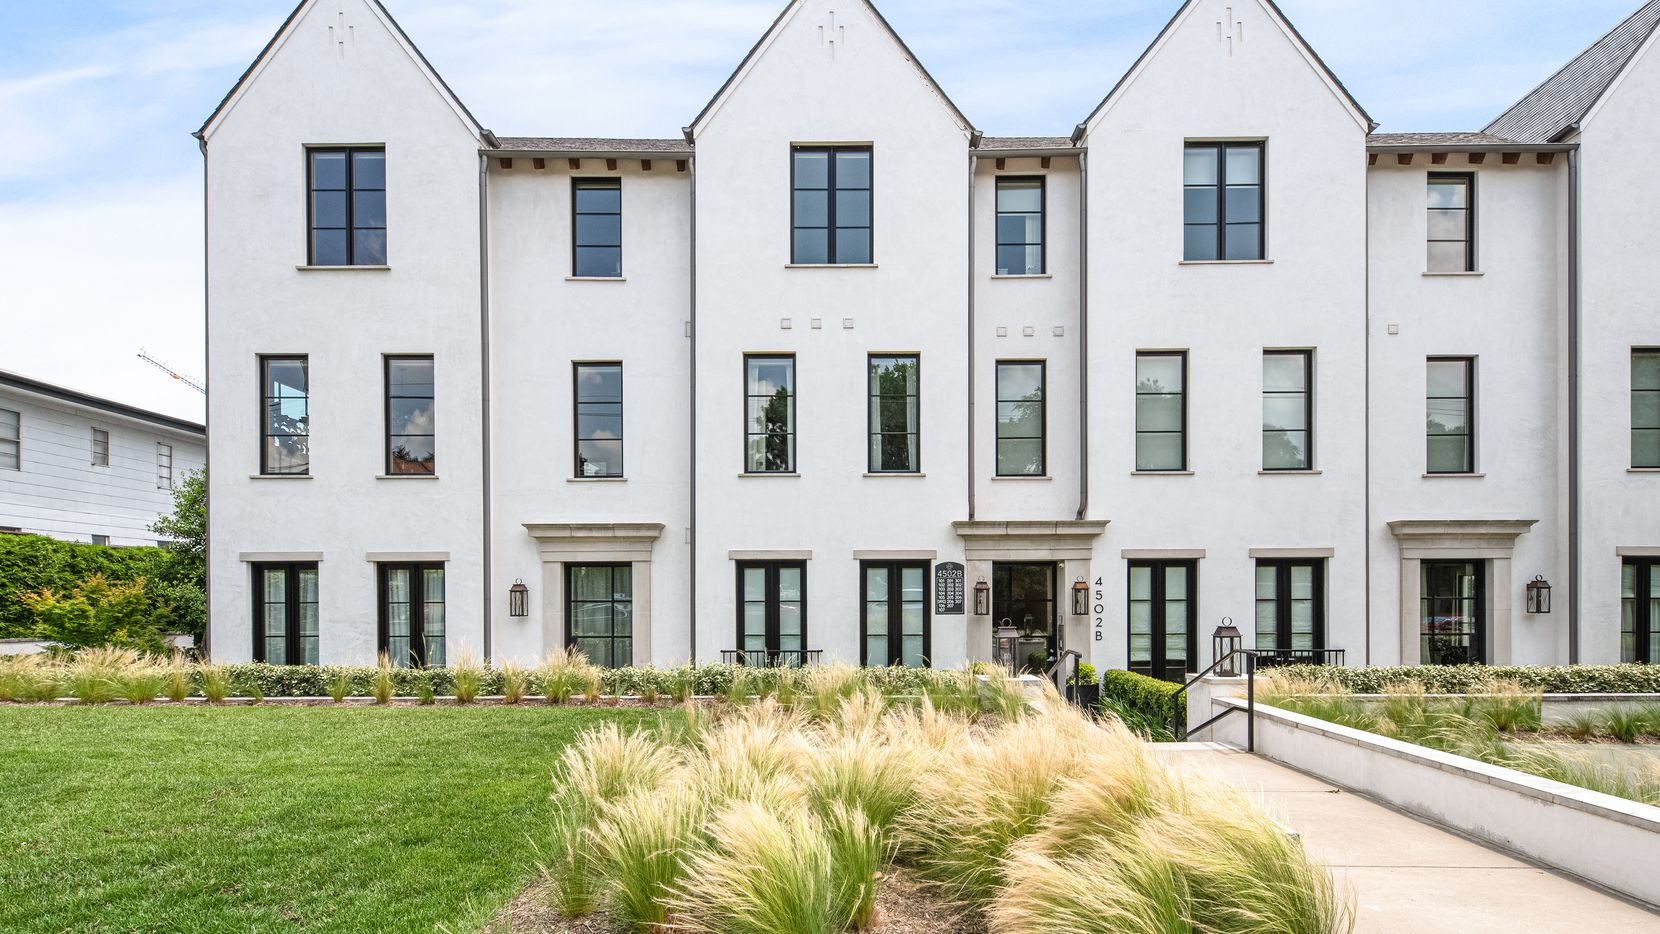 A look at 4502 Abbott Avenue, Unit 301 in Dallas.